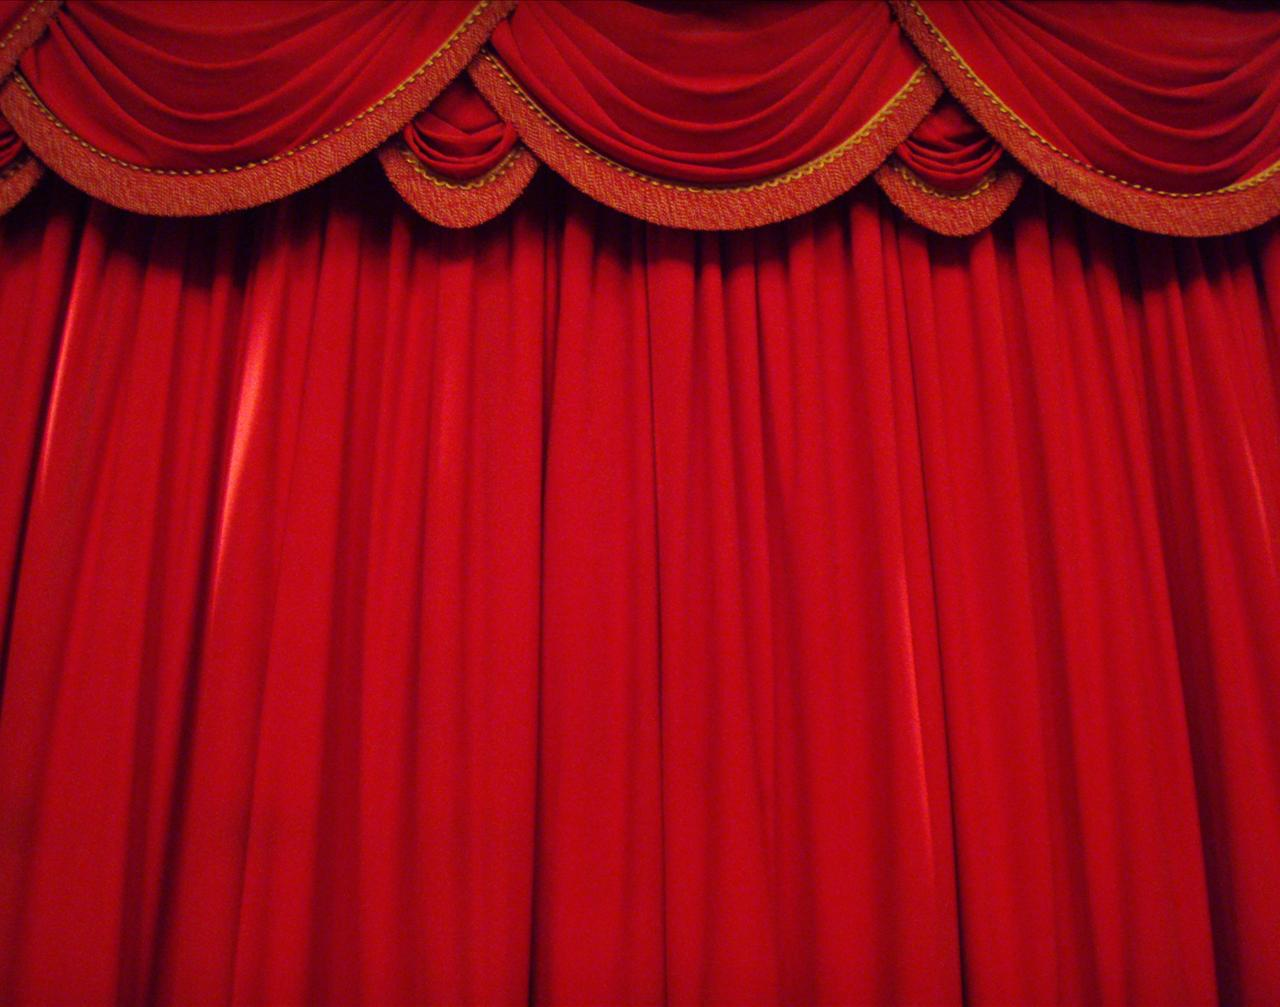 Curtain Call Backgrounds